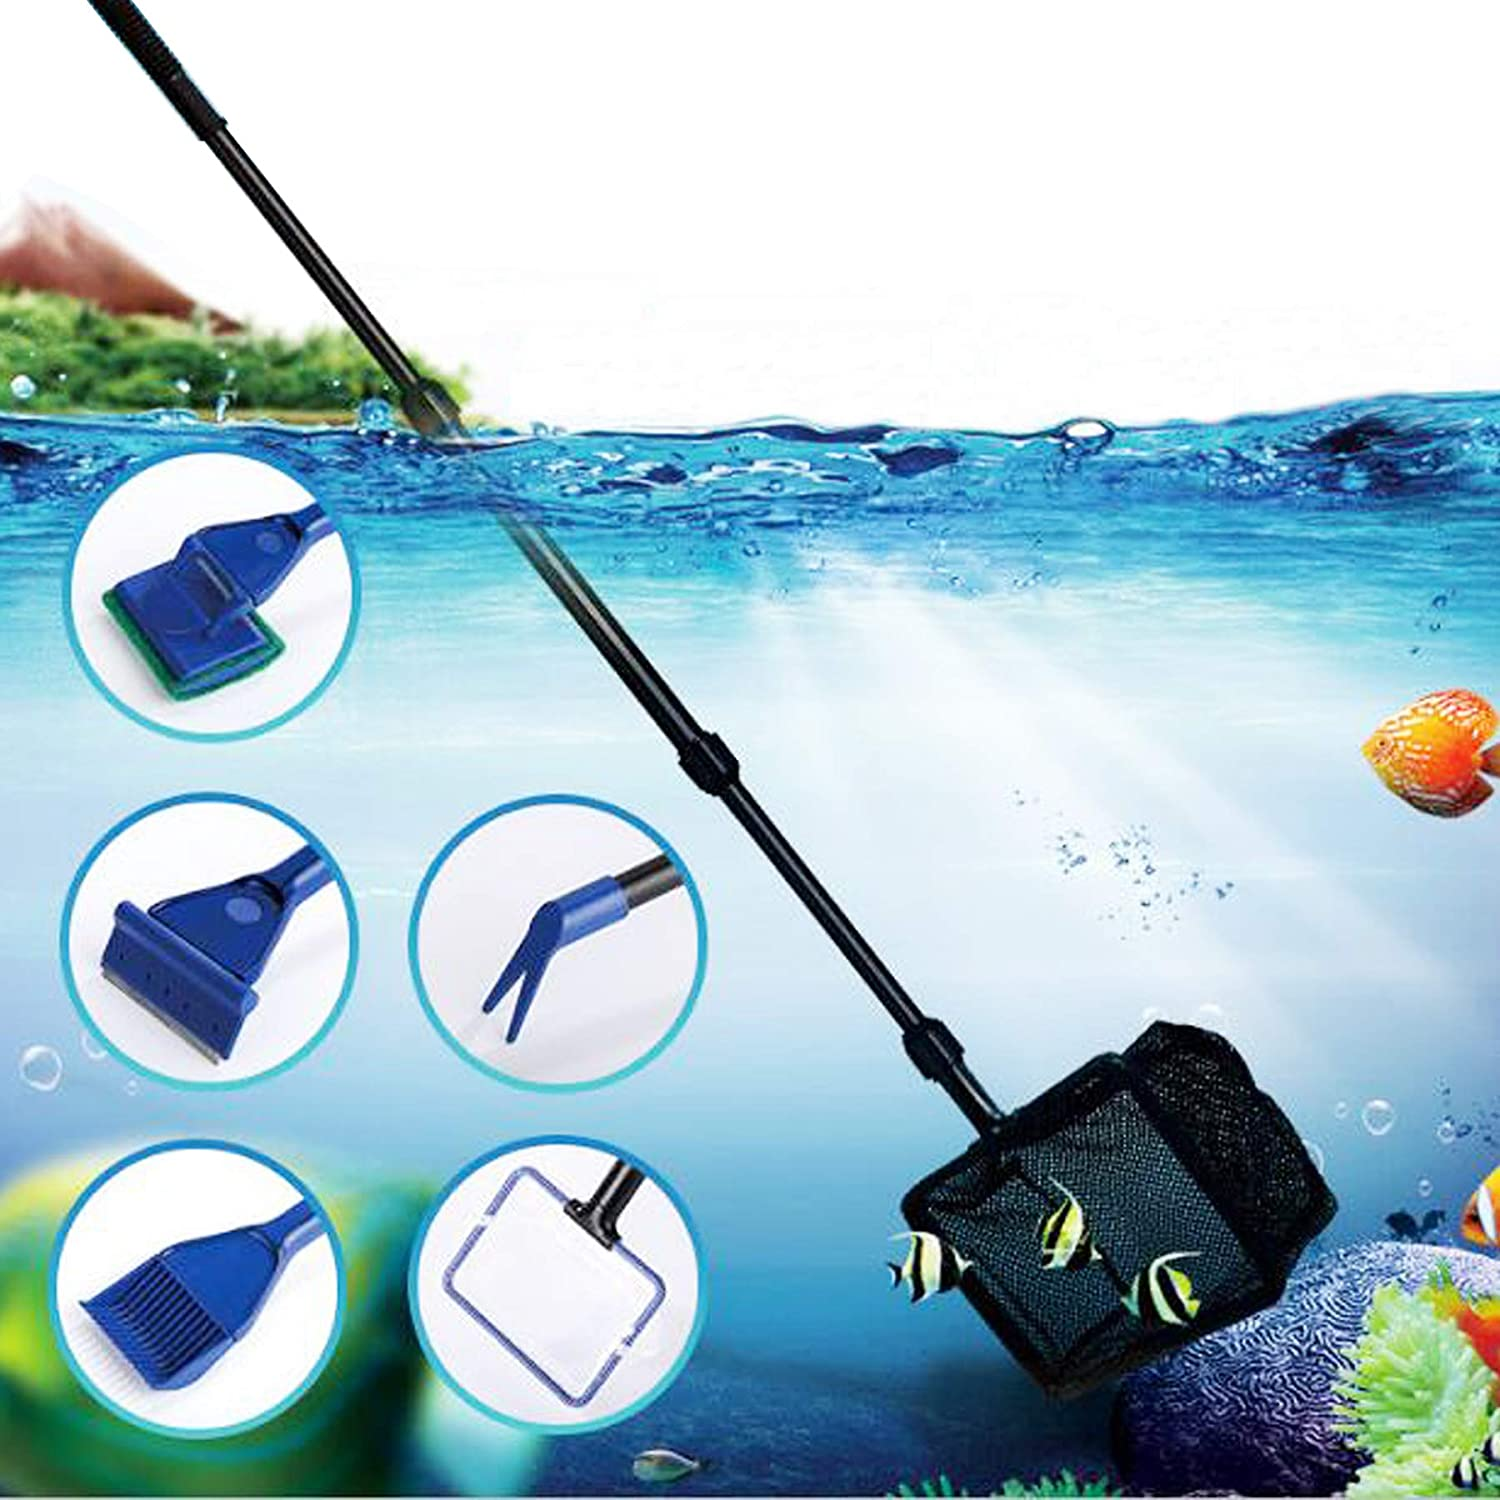 Gravel Cleaning Long Nozzle and Tank Clip for Water Changing and Sand Cleaner N A Cayway 5 Pack Aquarium Fish Tank Clean Tools Algae Scrapers Set Aquarium Gravel Cleaner with Flow Controller